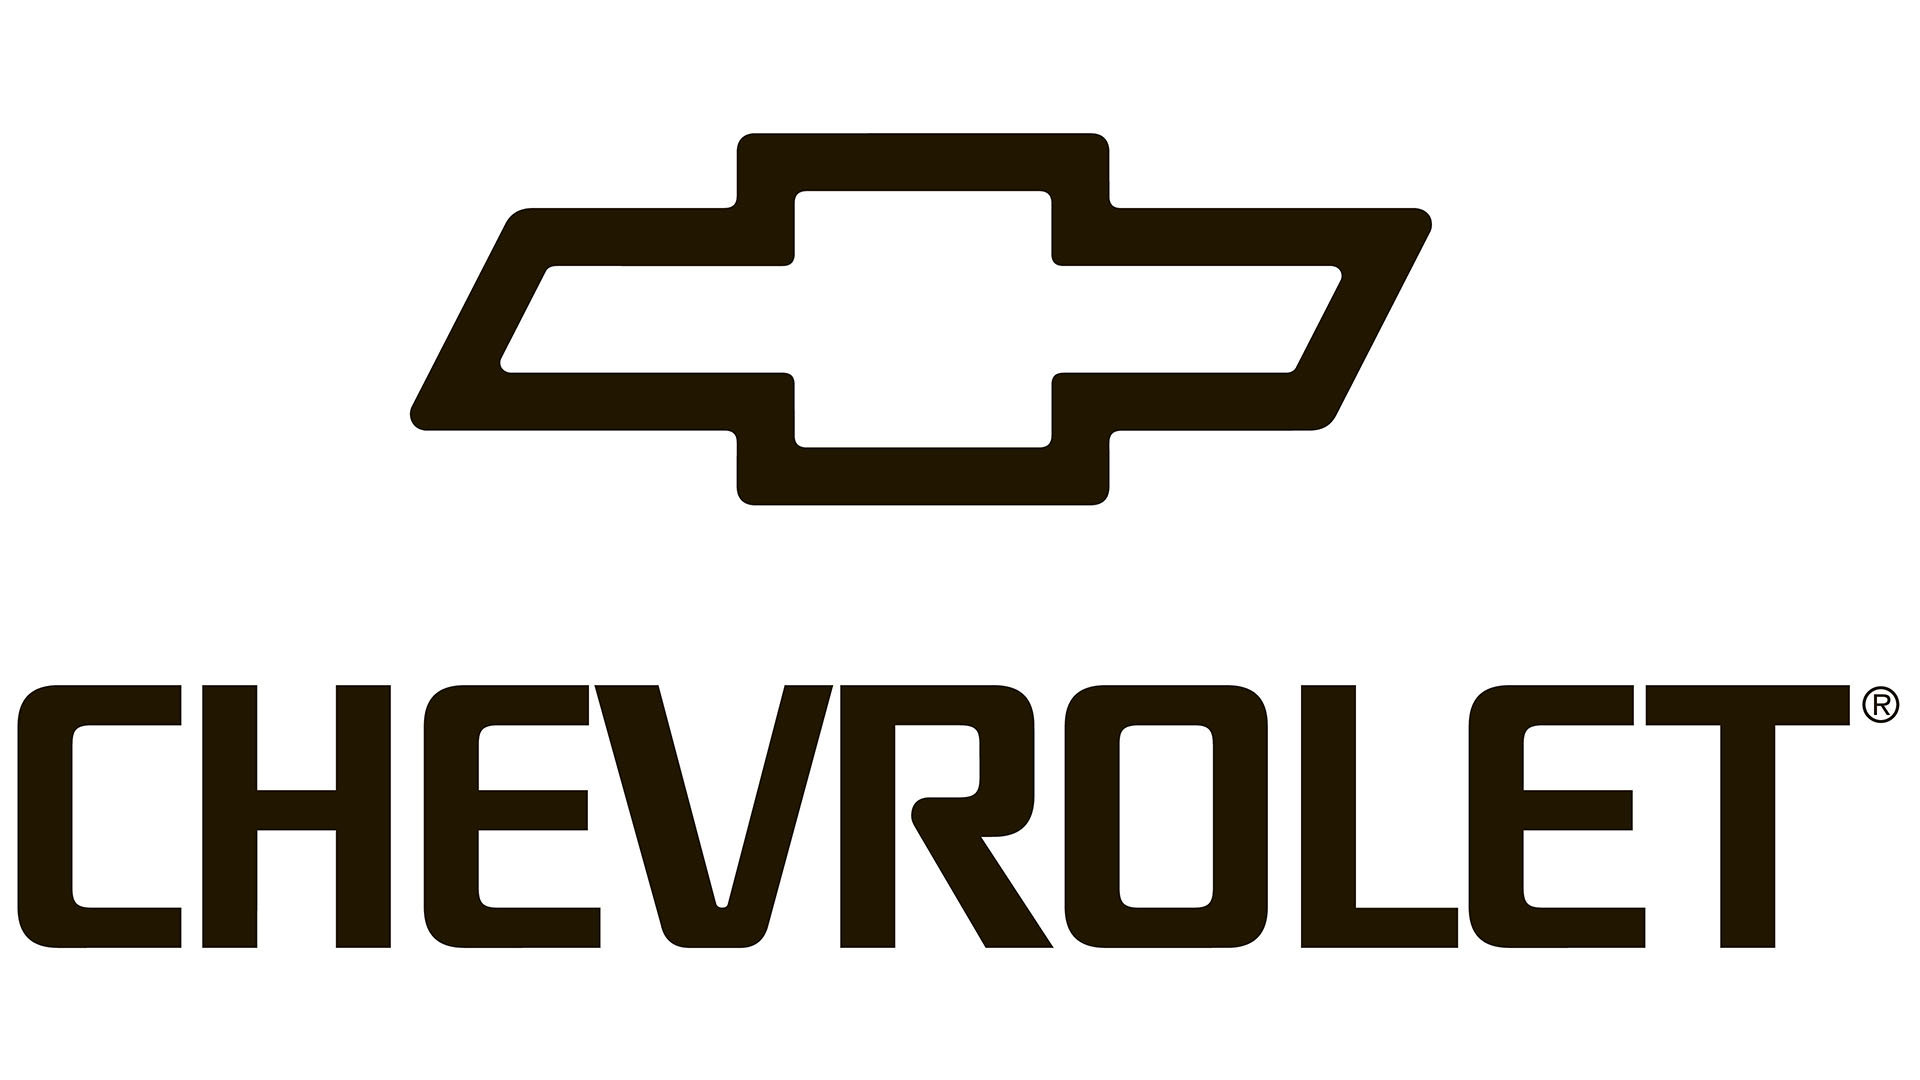 Chevrolet Logo Meaning and History [Chevrolet symbol]